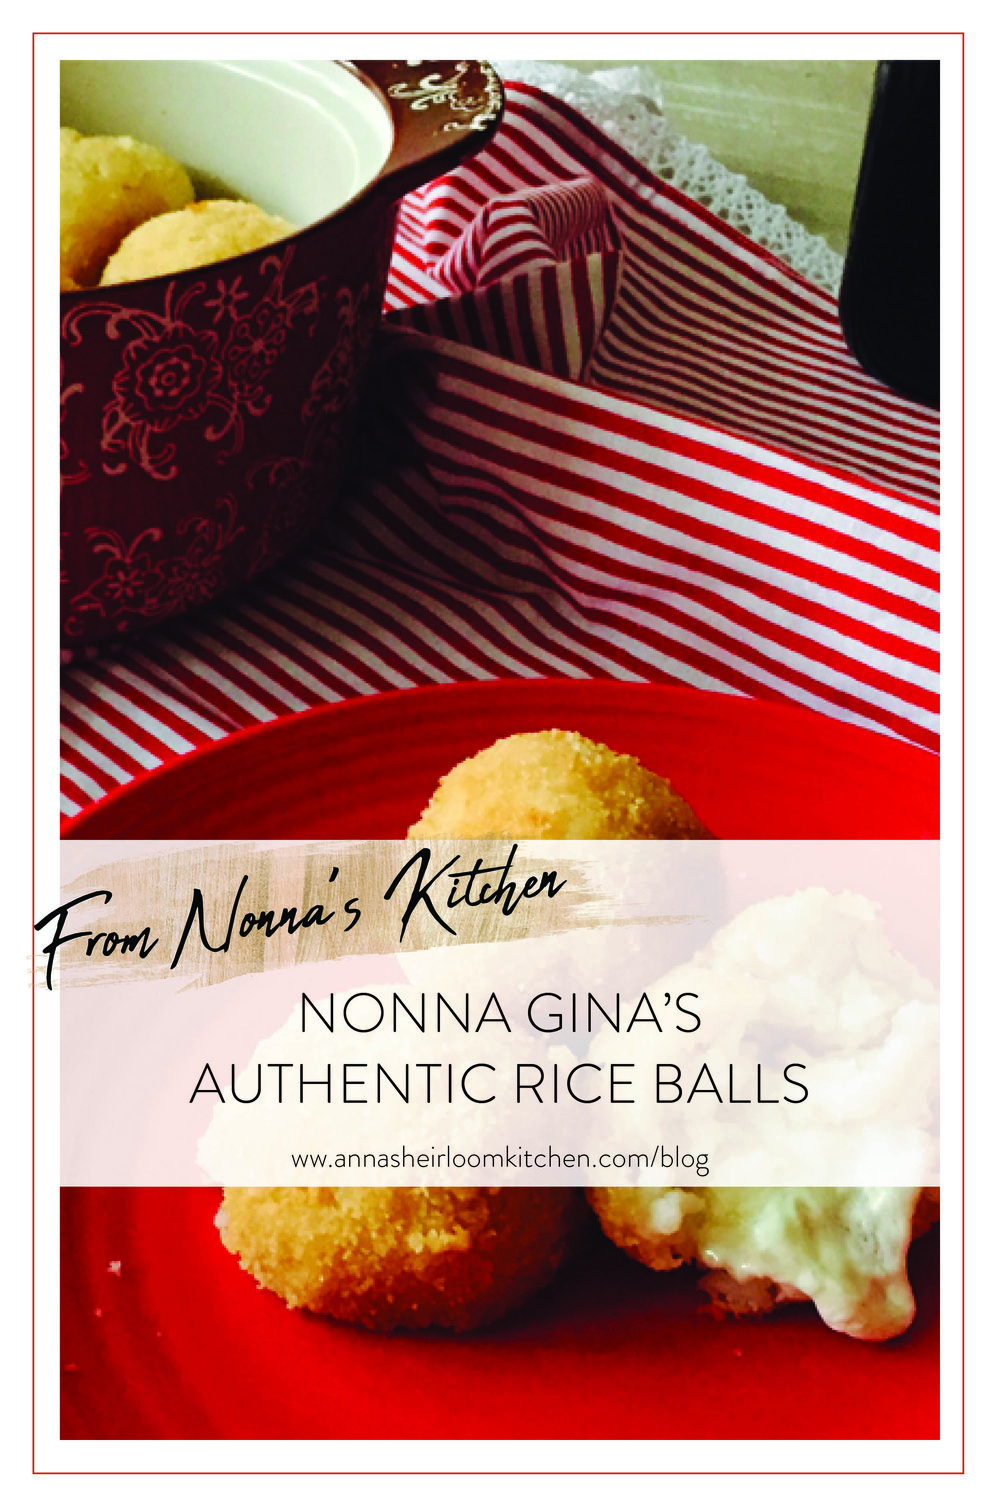 NONNA-GINA'S-RICE-RISSOTTO-BALLS-RECIPE